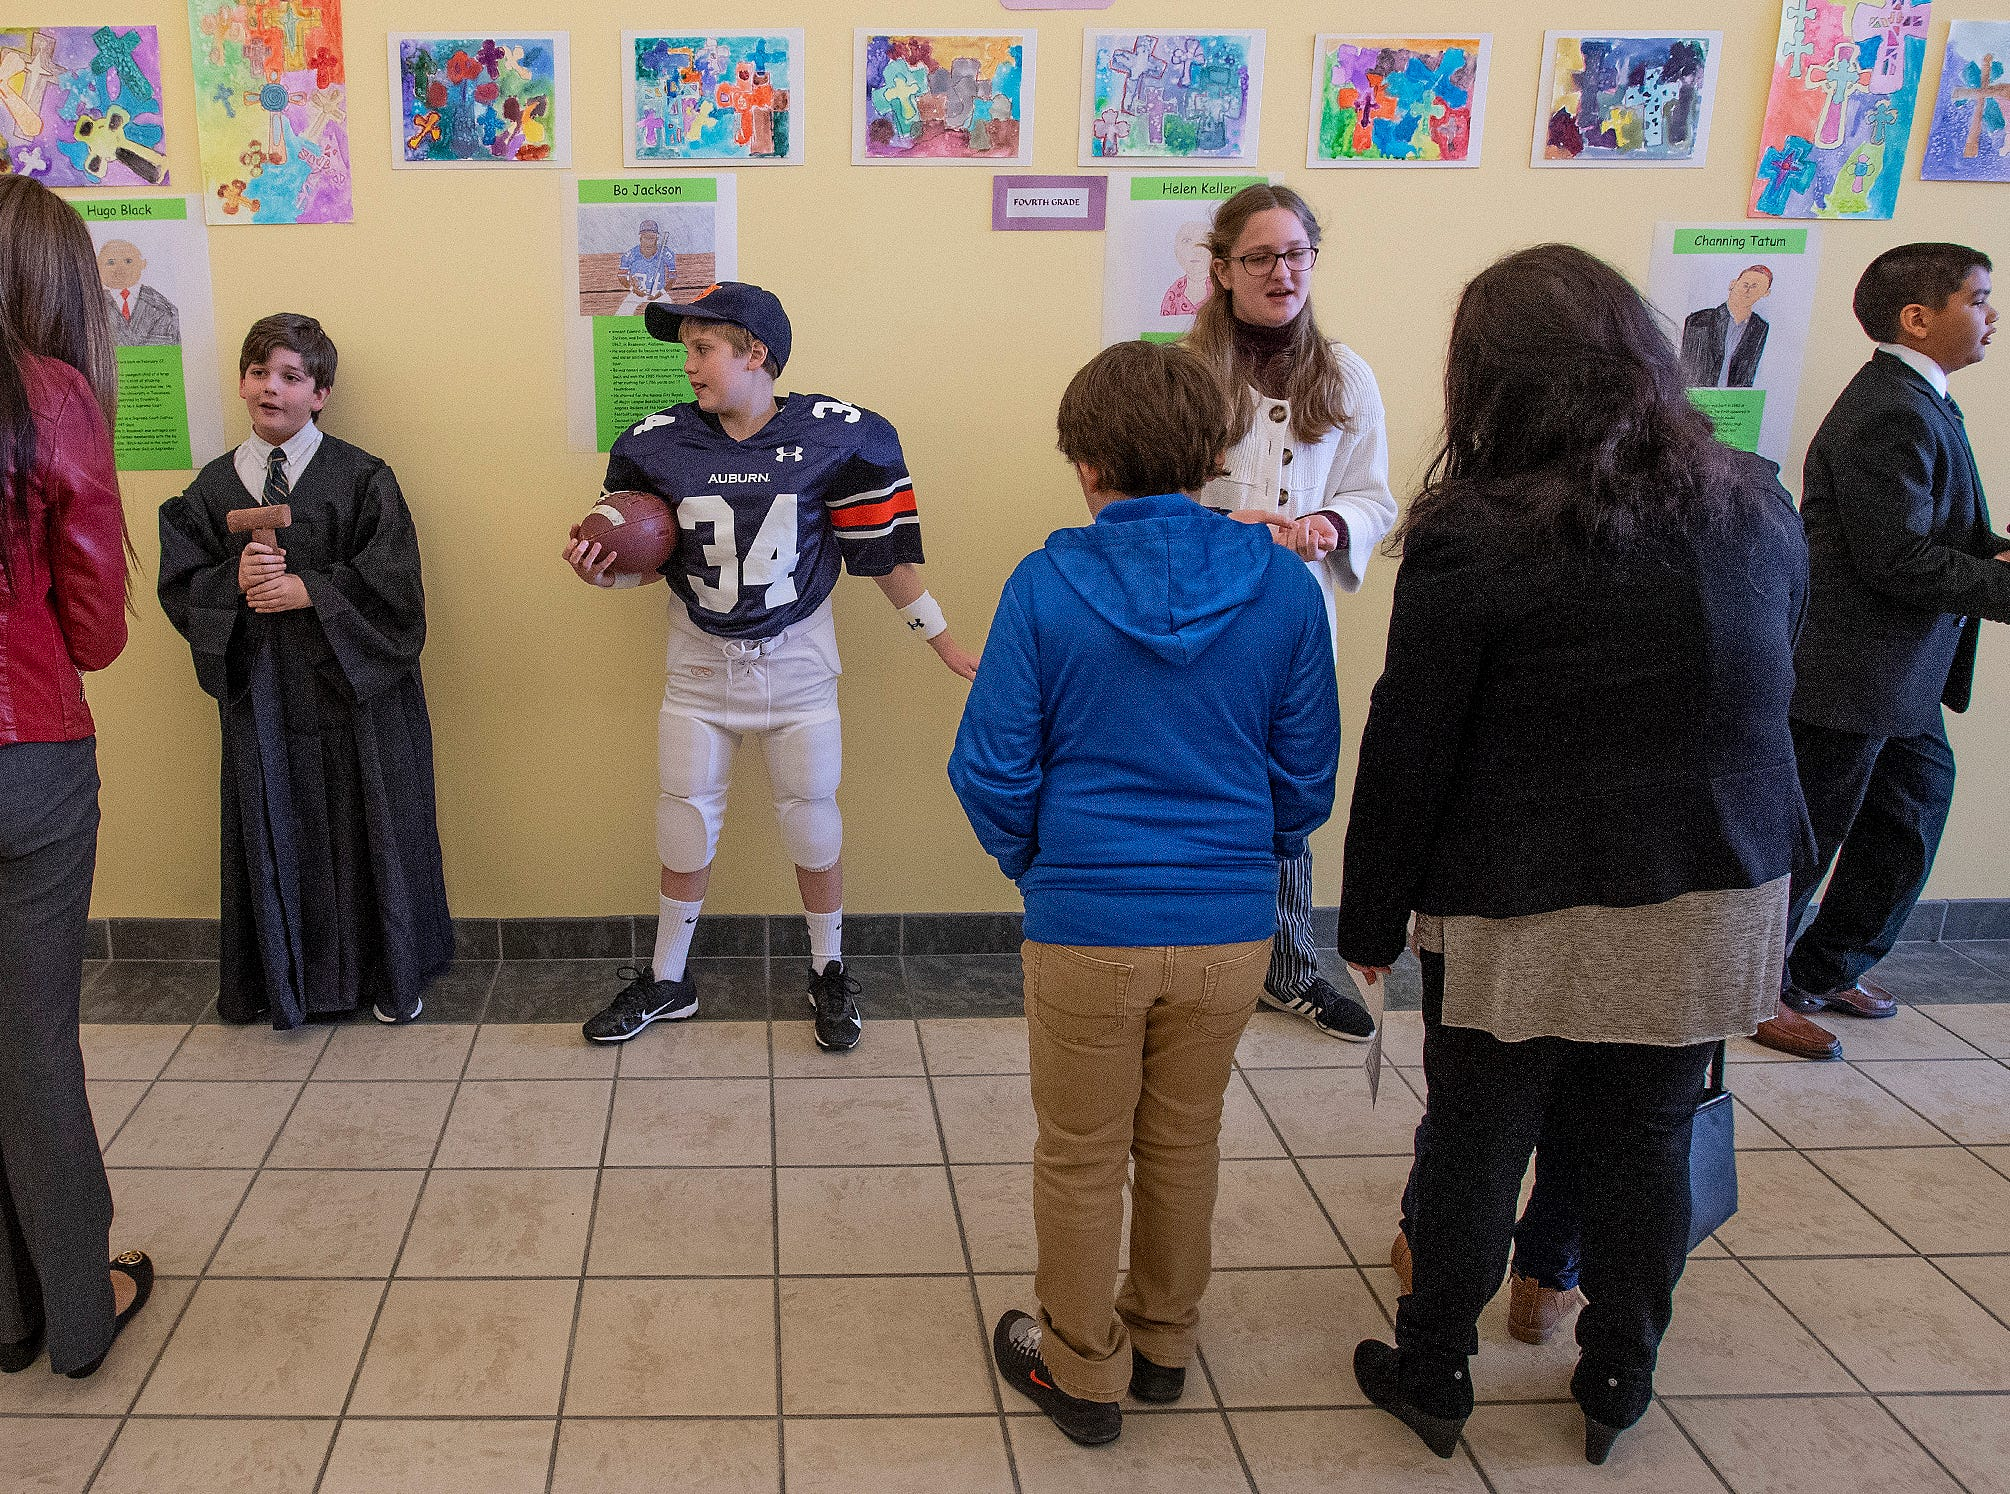 Fifth and sixth grade students portray Alabamians in their Alabama Bicentennial Wax Museum, telling the stories of their characters to visitors, at Holy Cross Episcopal School in Montgomery, Ala., on Friday February 15, 2019.